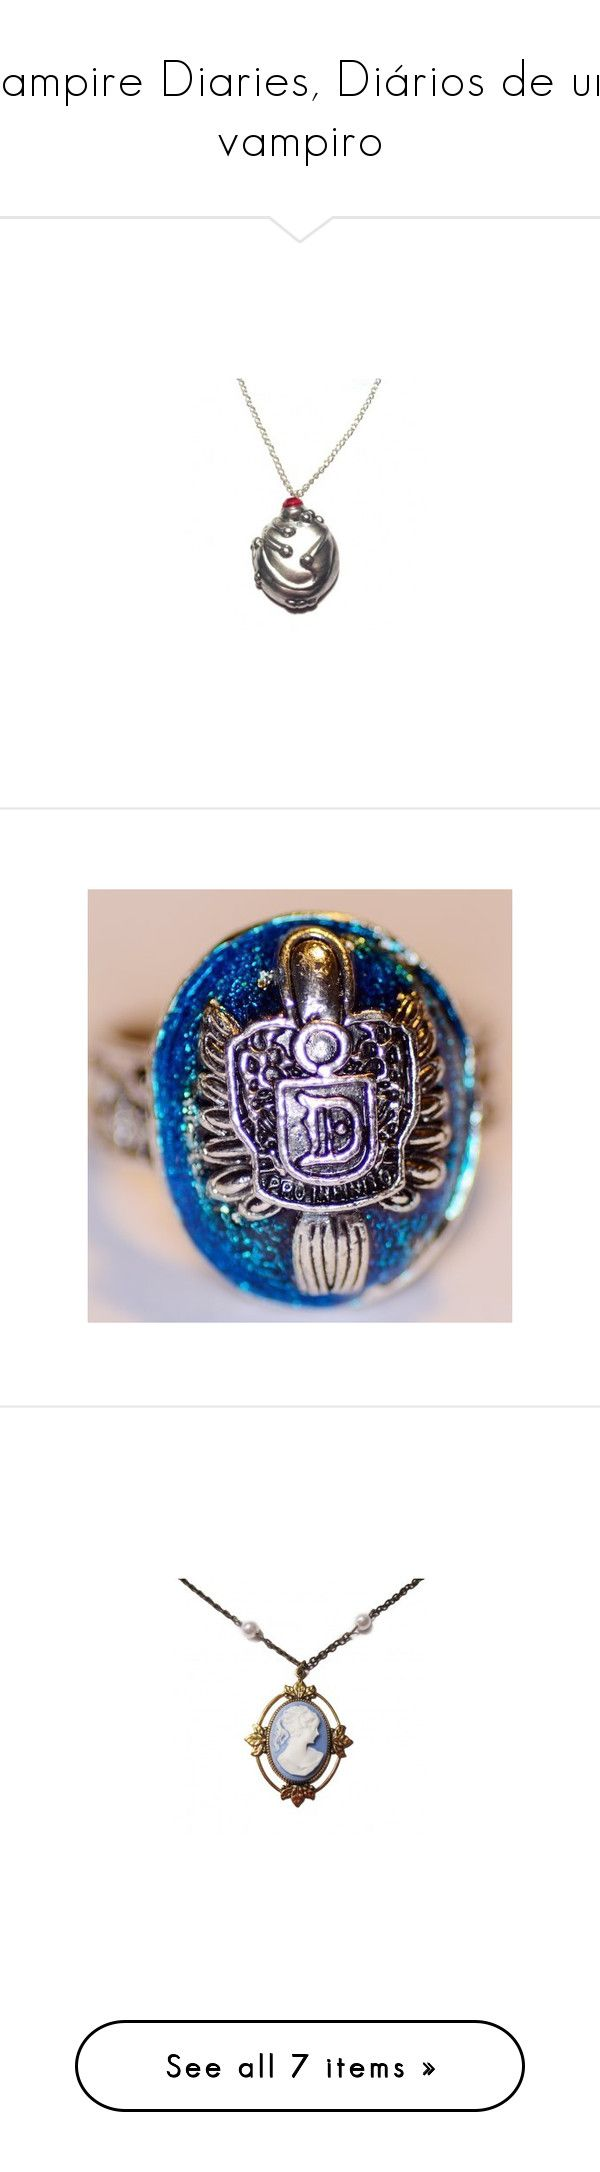 """""""Vampire Diaries, Diários de um vampiro"""" by carolzinha1232 ❤ liked on Polyvore featuring necklaces, jewelry, accessories, vampire diaries, tvd, rings, colares, jóias, star jewelry and star necklace"""